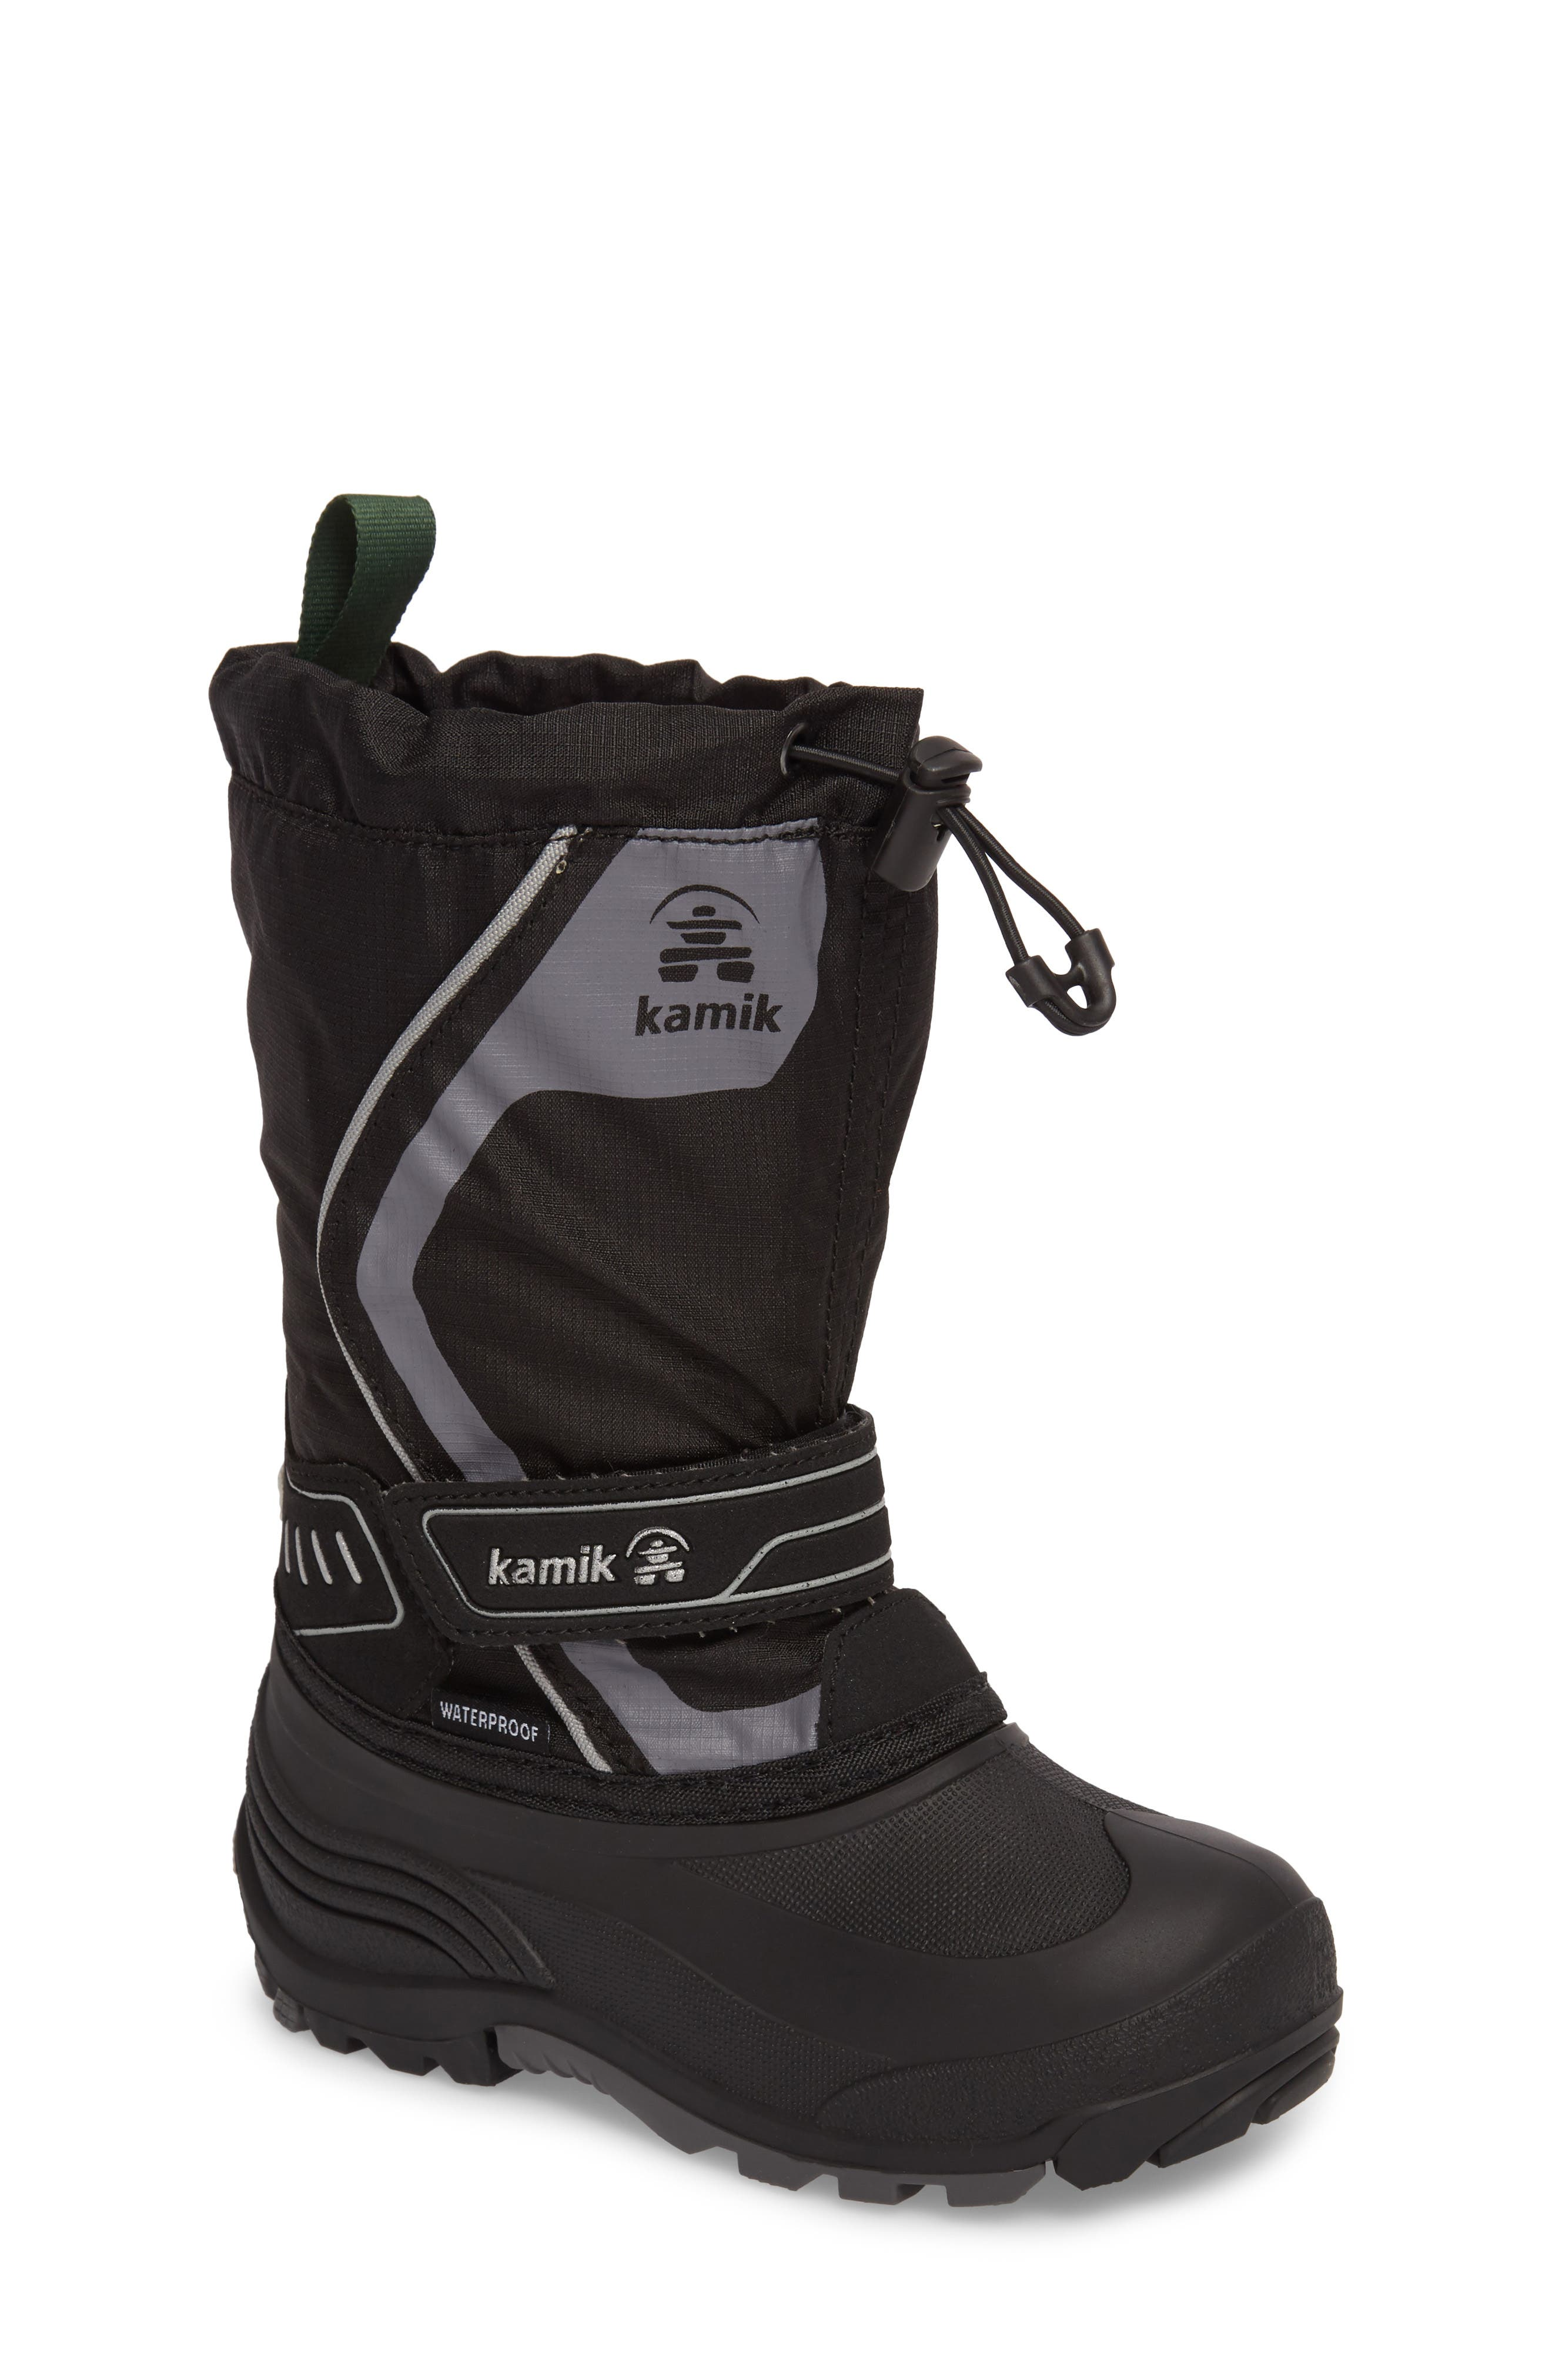 Kamik Snowcoast3 Waterproof Snow Boot (Toddler, Little Kid & Big Kid)